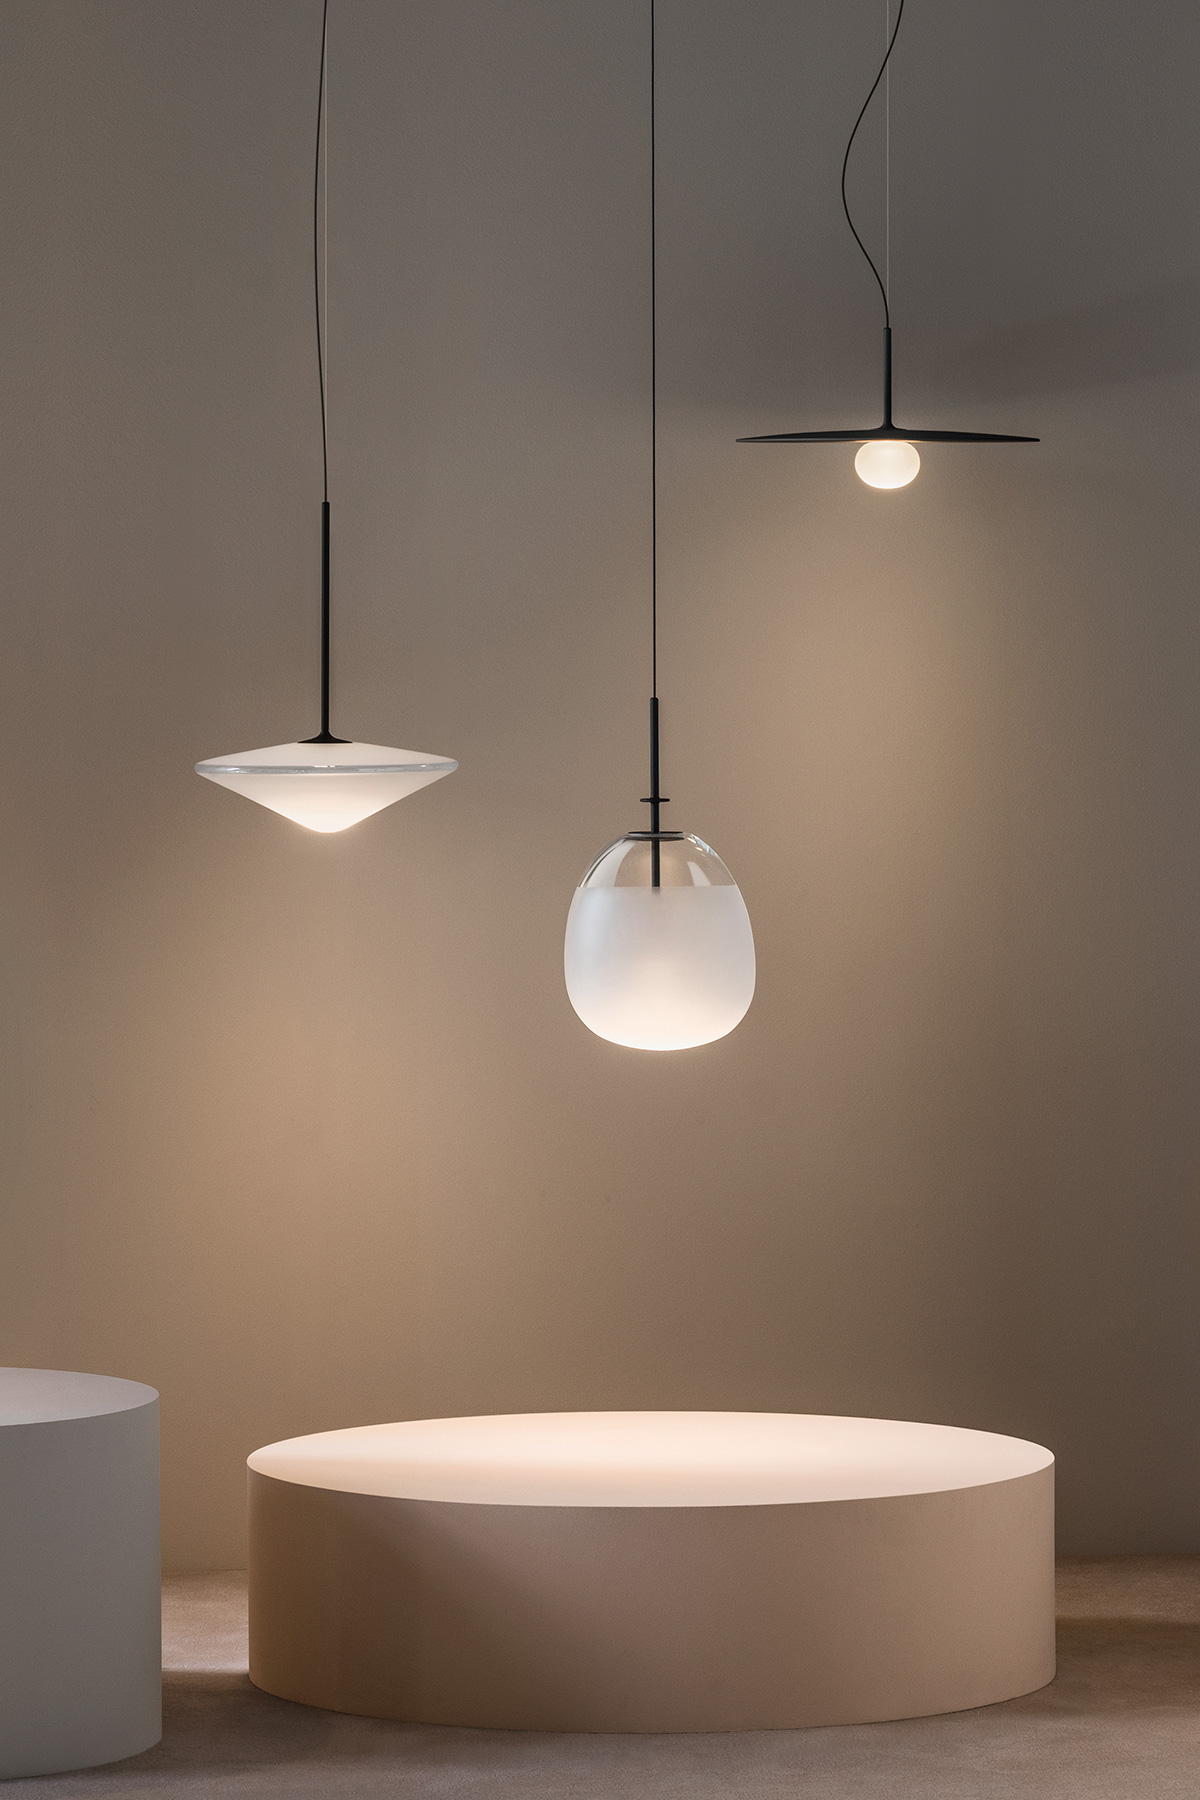 Tempo pendant light in black by Vibia